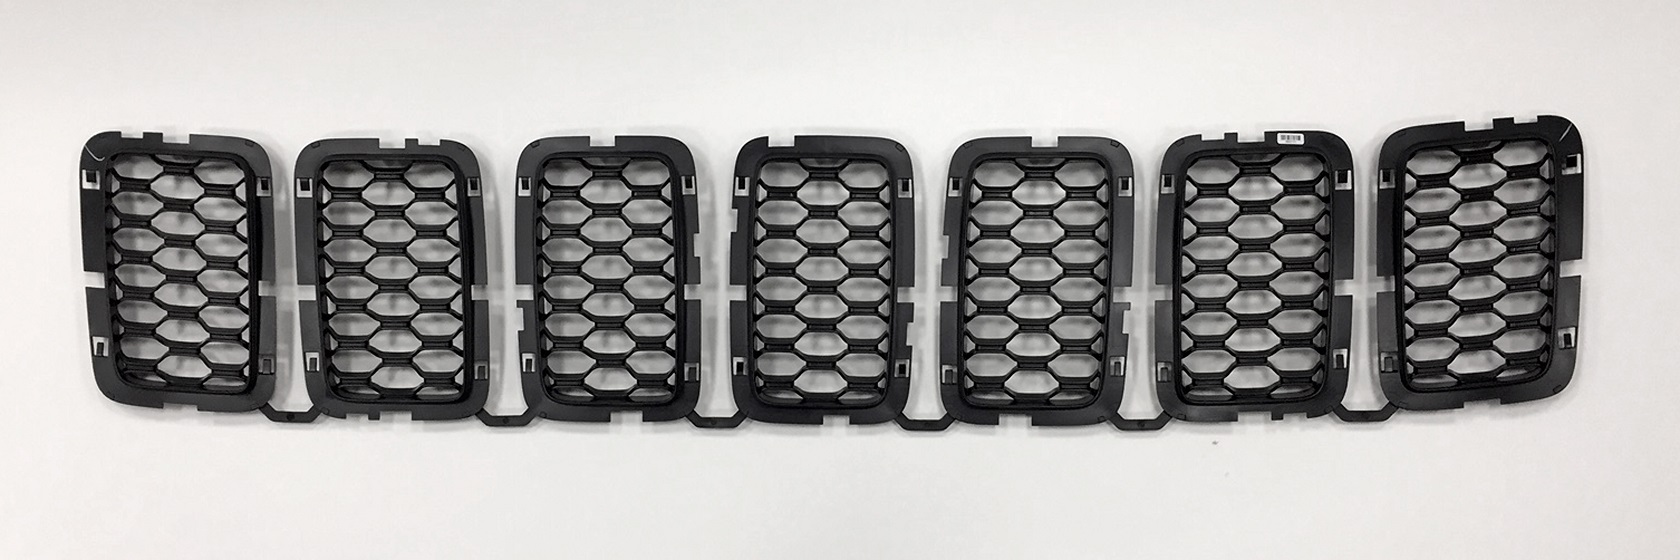 2017 Grand Cherokee Black Honeycomb Grill Inserts